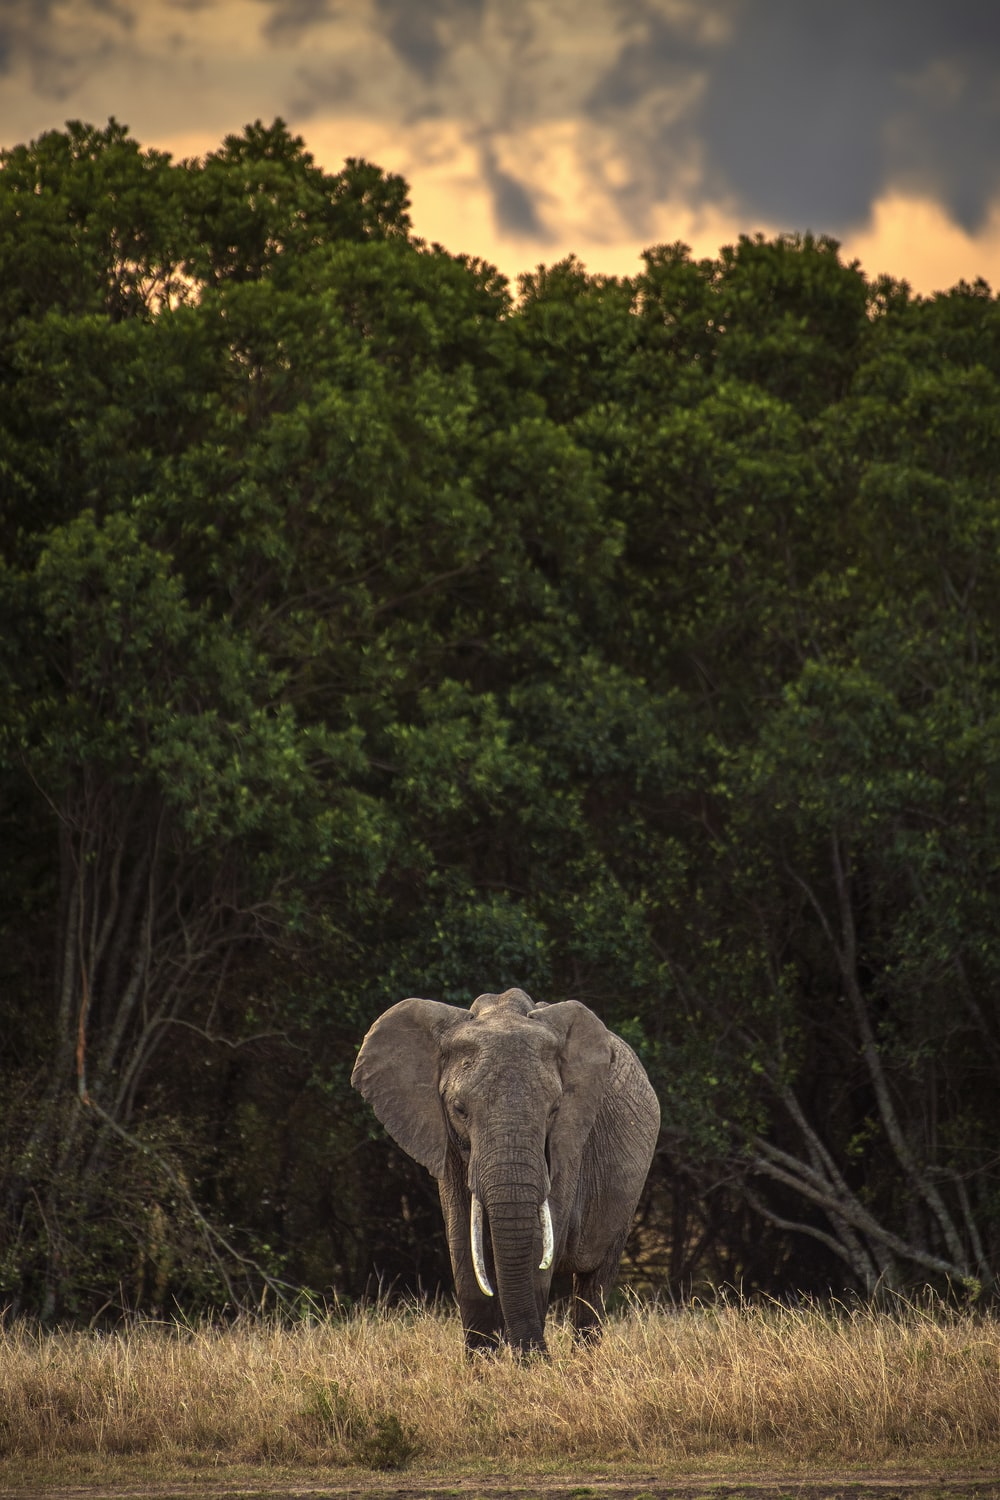 elephant standing on green grass field near green trees during daytime